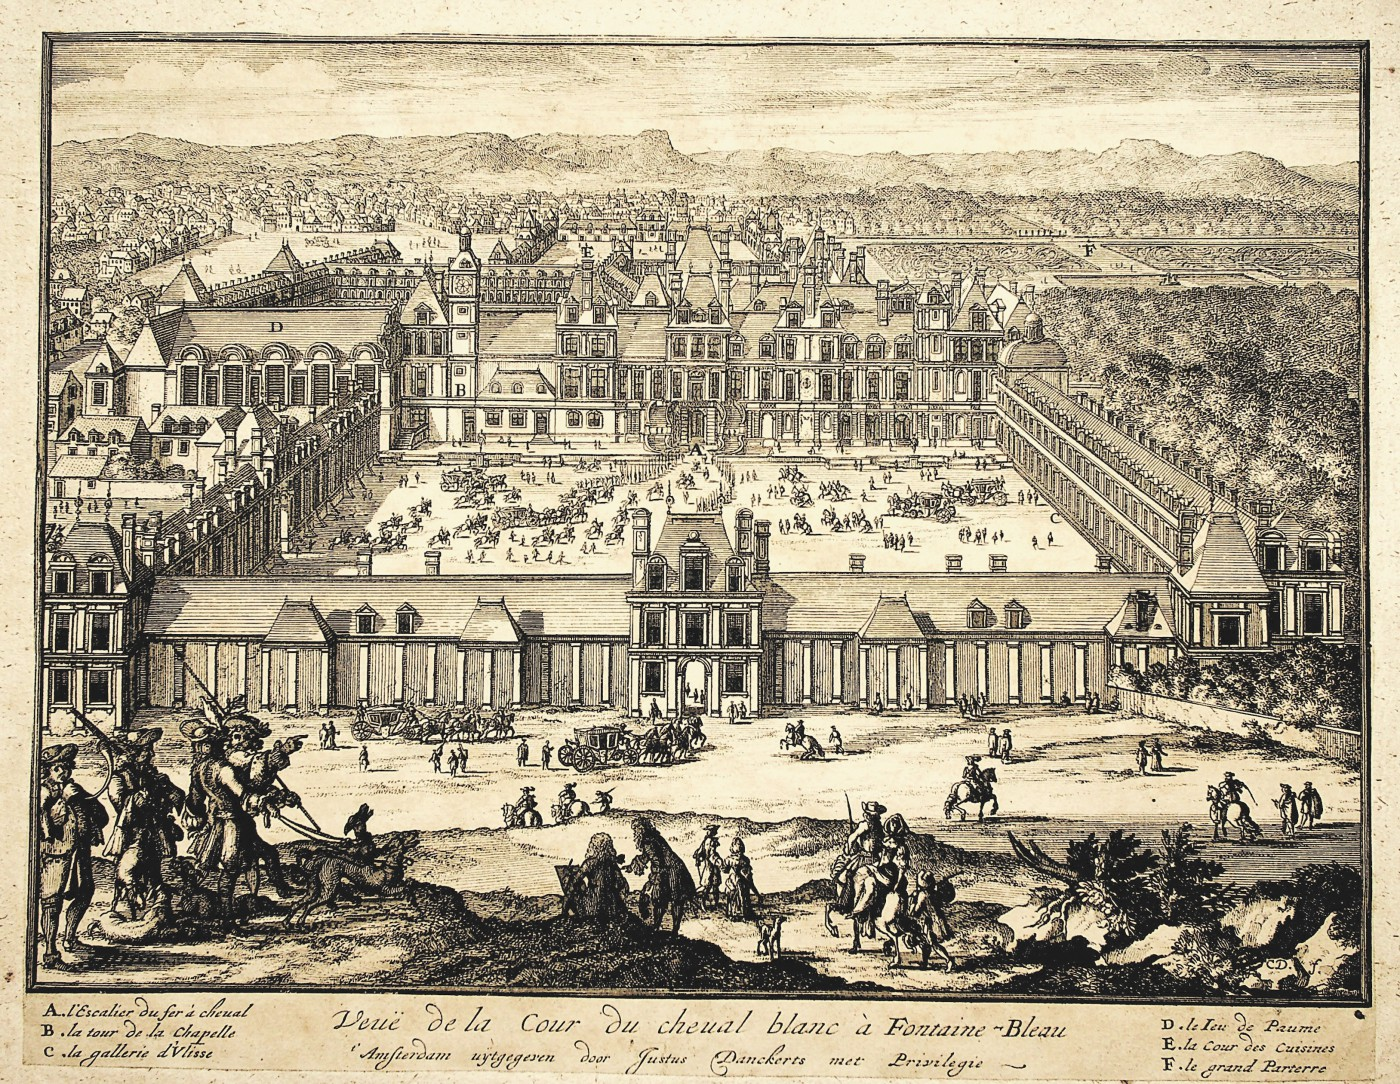 View of the White Horse Courtyard in Fontainebleau. Ca. 1690.